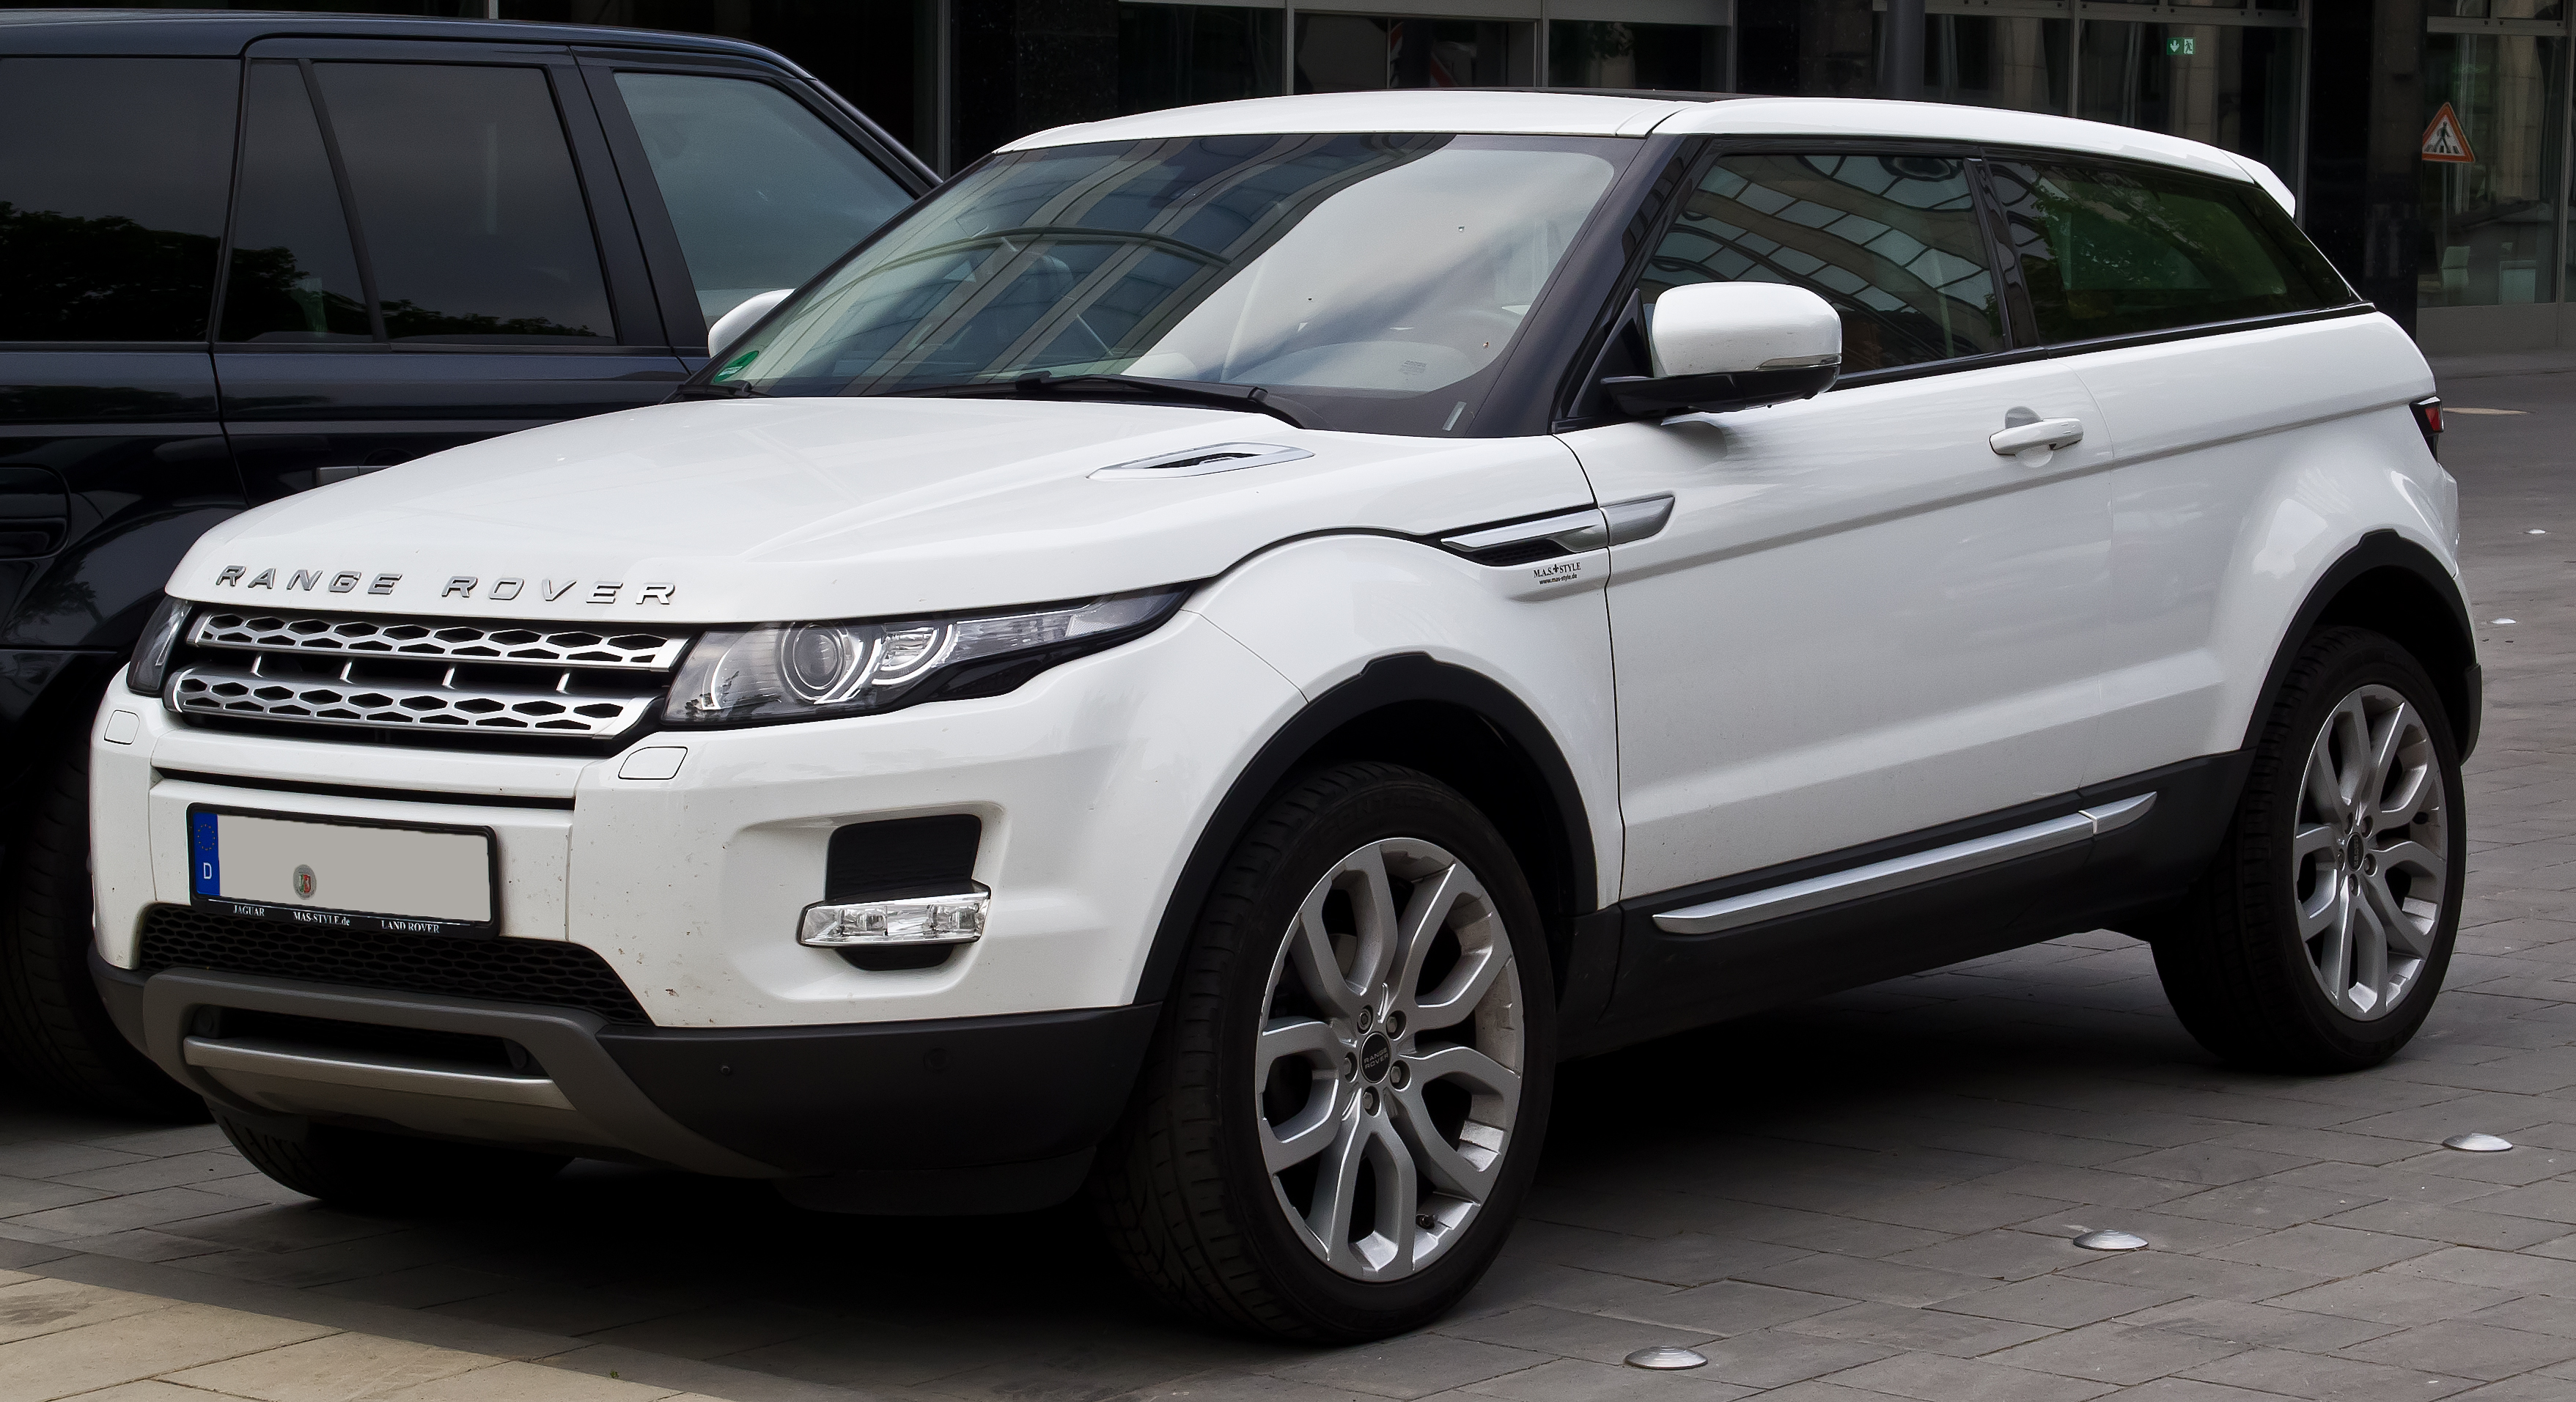 landrover evoque previous for dynamic cars land manual crossover door range next sale rover